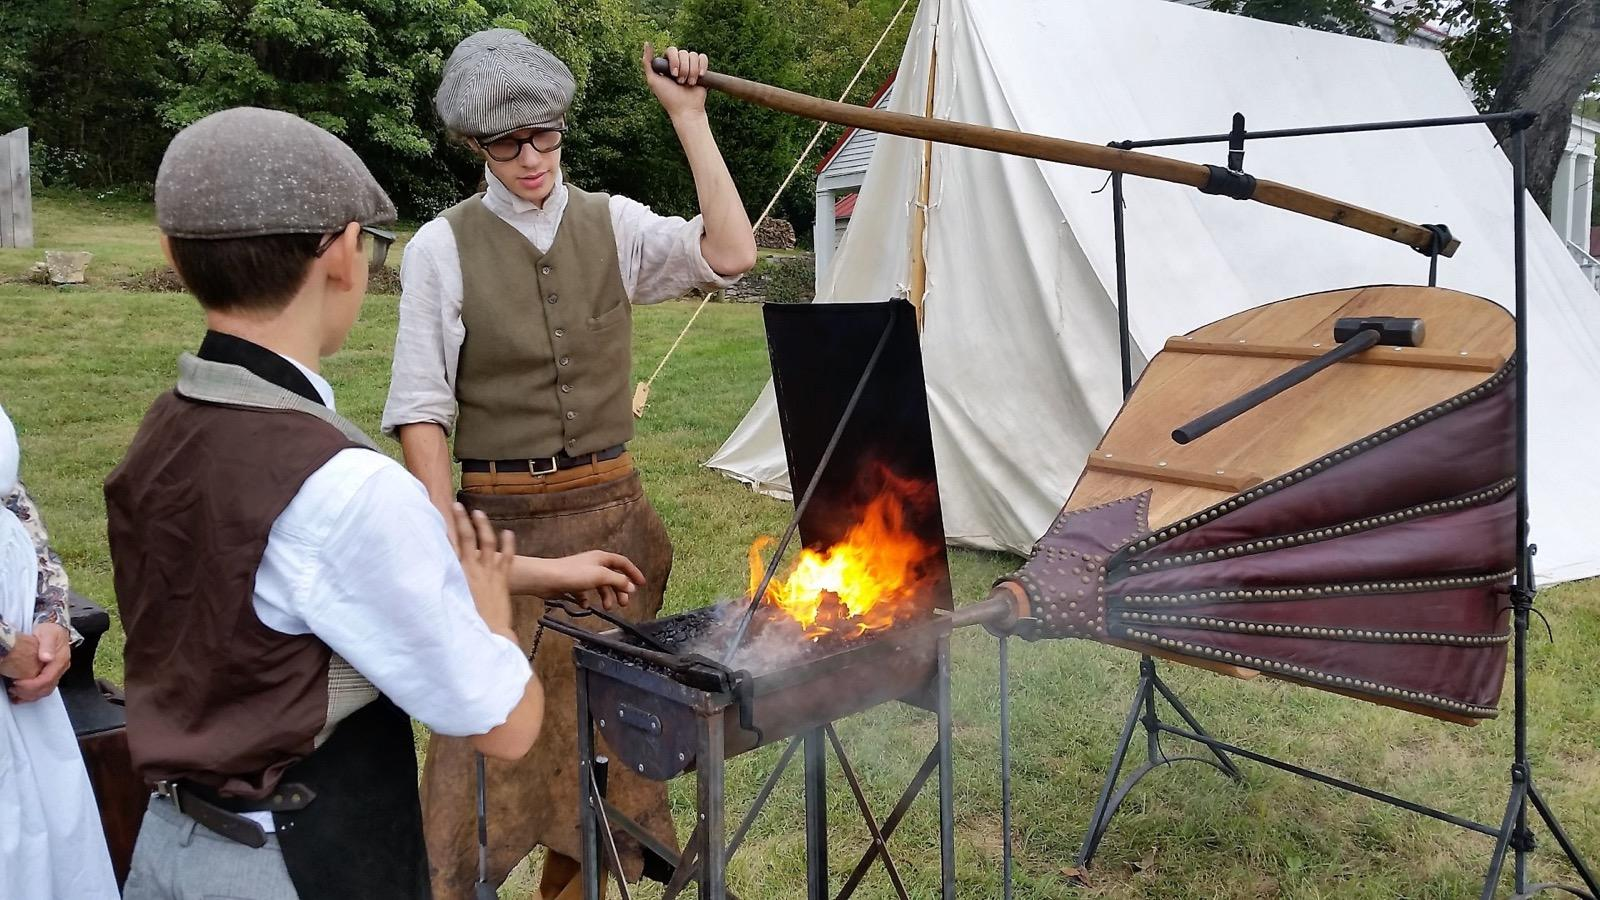 At Musée de Venoge, you'll learn about what life was like in the early 19th-century, when Swiss immigrants settled the region immediately to the west of Cincinnati. Period actors demonstrate the domestic arts and early gardening methods, in addition to making some pretty fantastic-looking breads, cheeses, and pies. / Image courtesy of the Switzerland County Historical Society // Published: 4.1.18